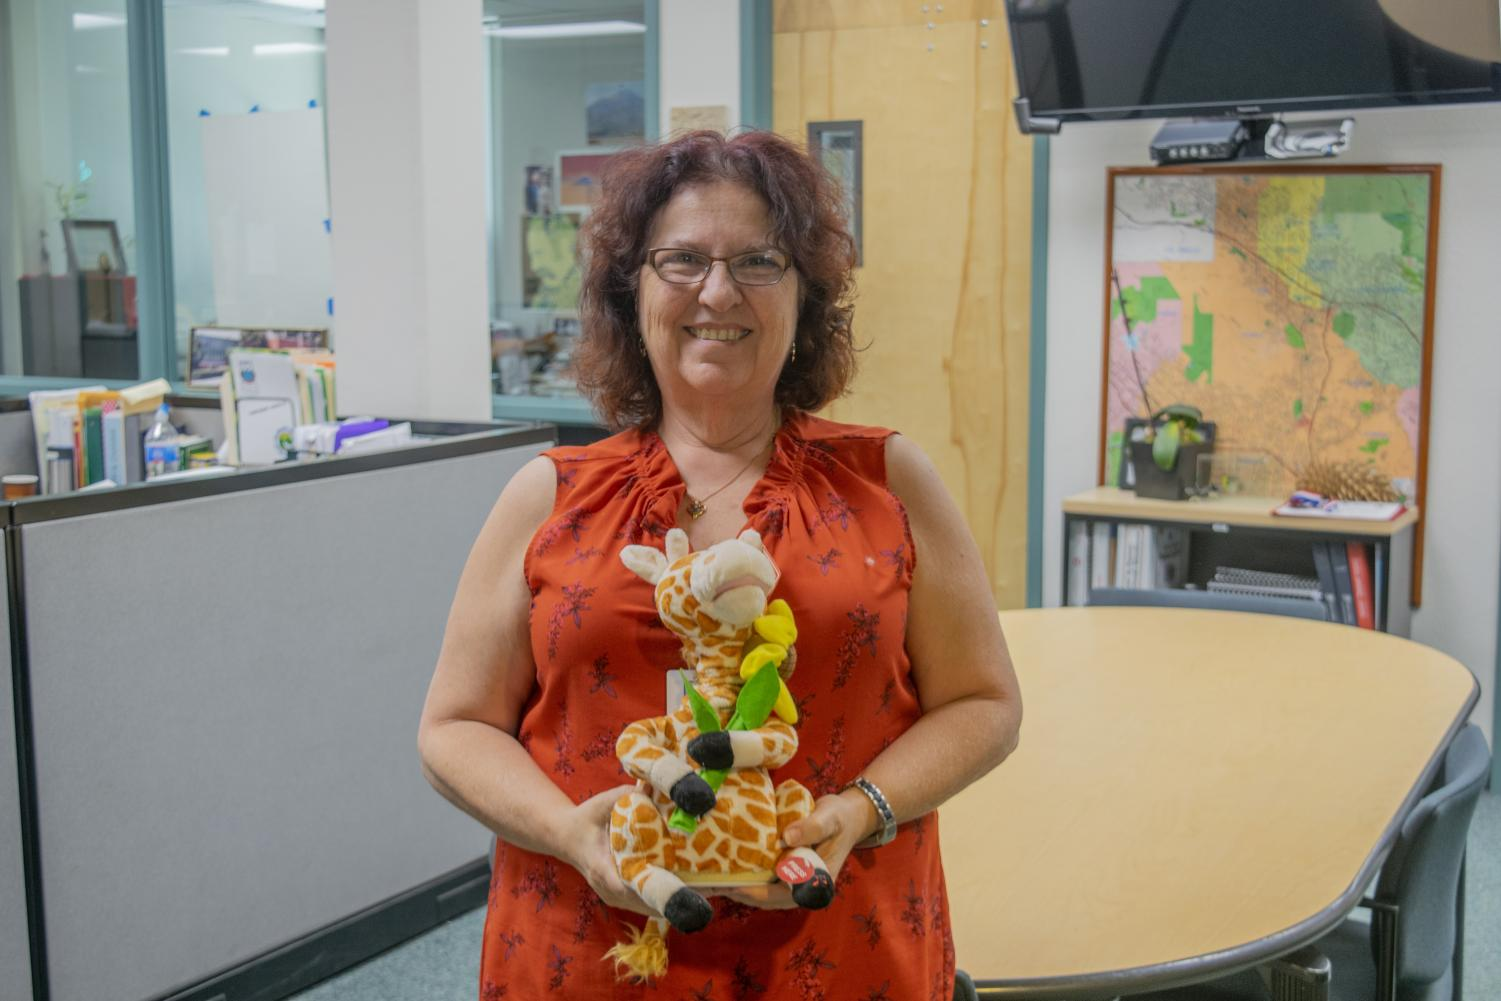 Ms. Howe, one of Clark's counselors, holding one of her iconic giraffes.